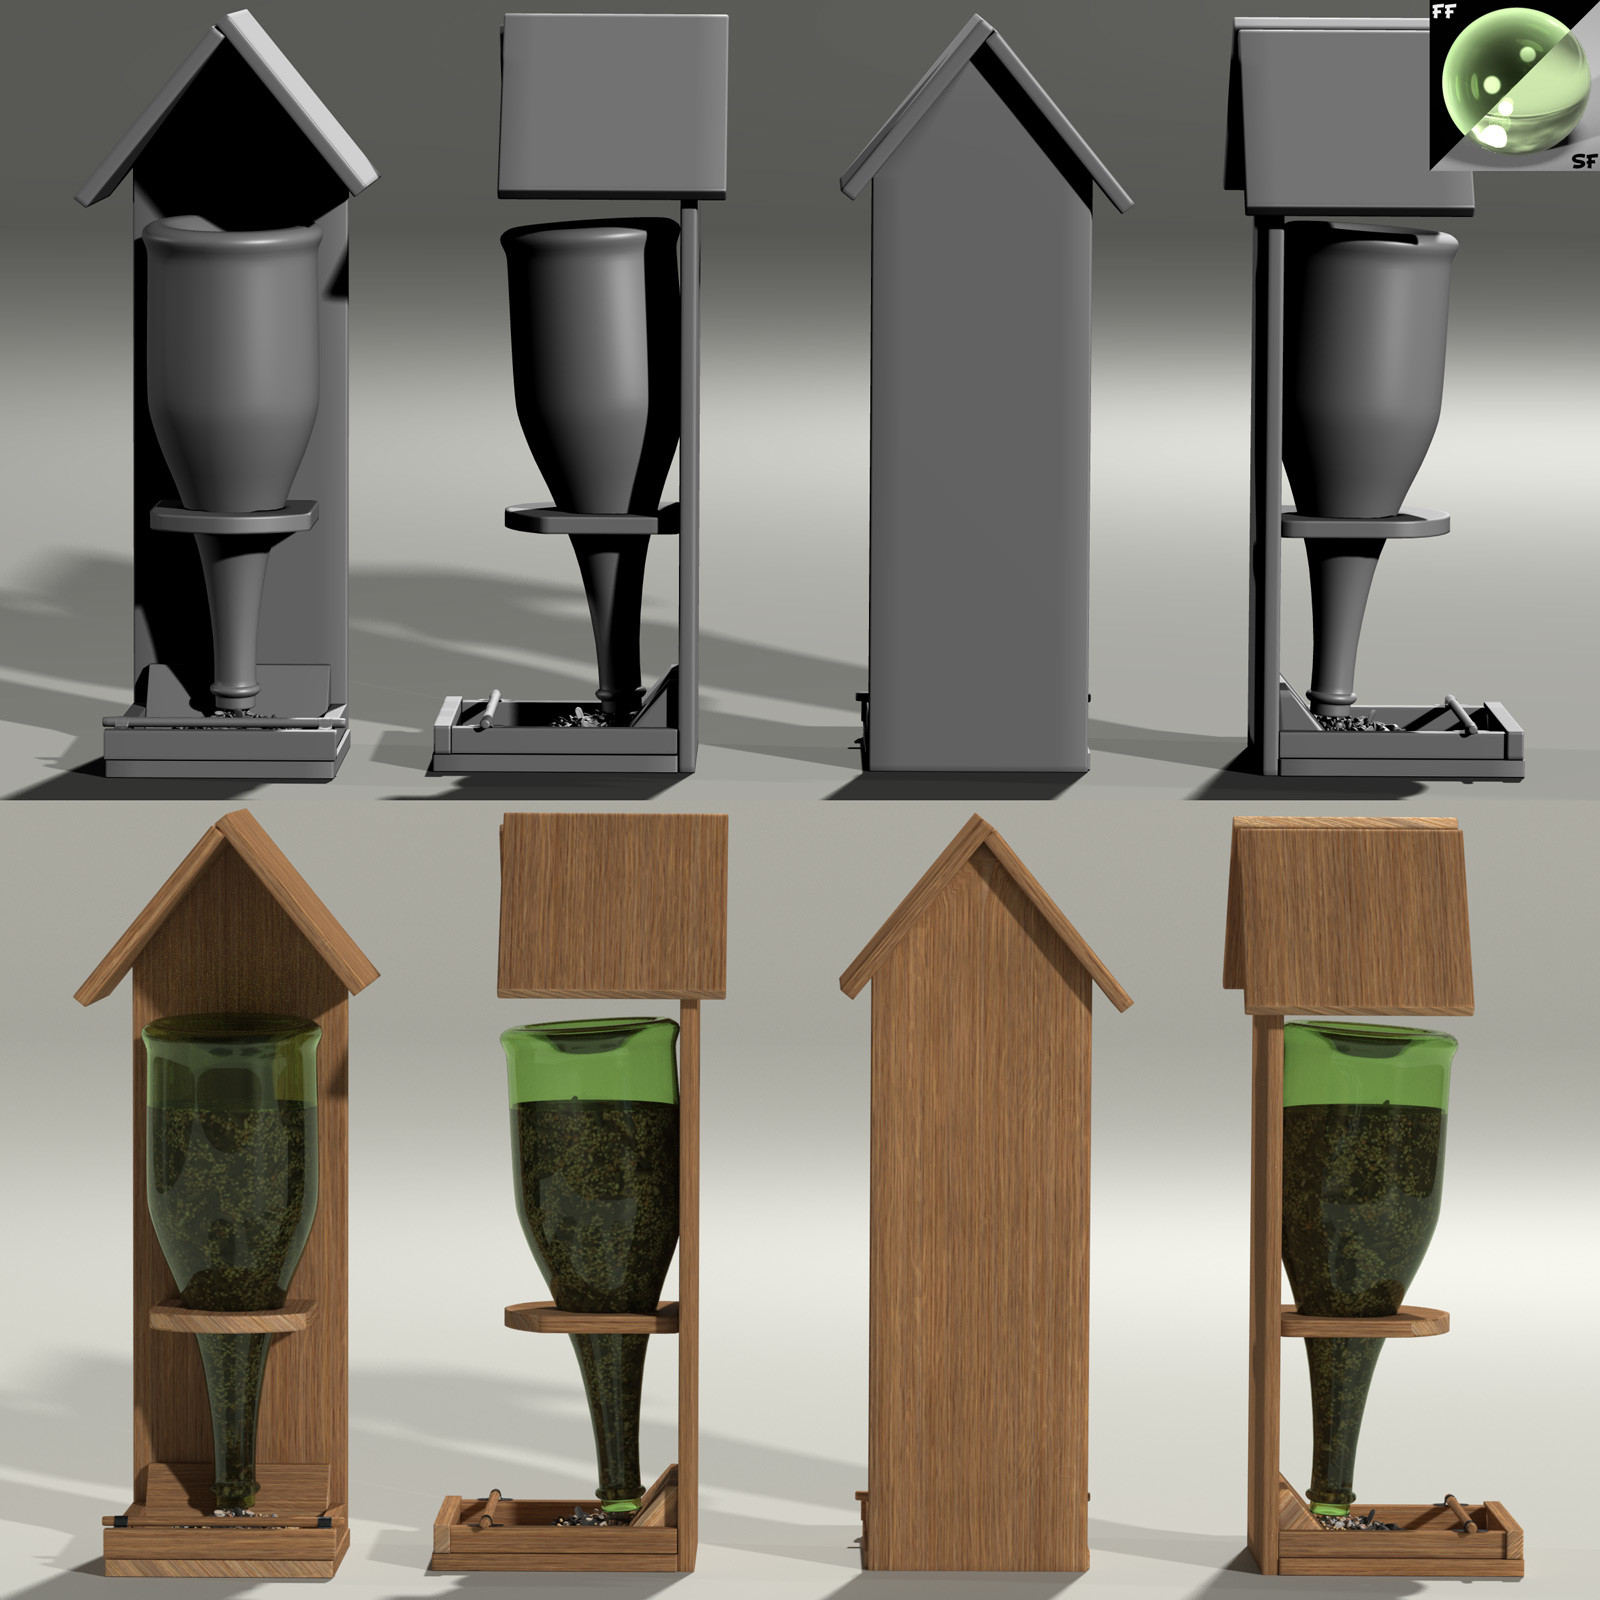 This is a 360 degree turnaround of the champagne bottle-based feeder, rendered in Poser with SuperFly/Cycles.